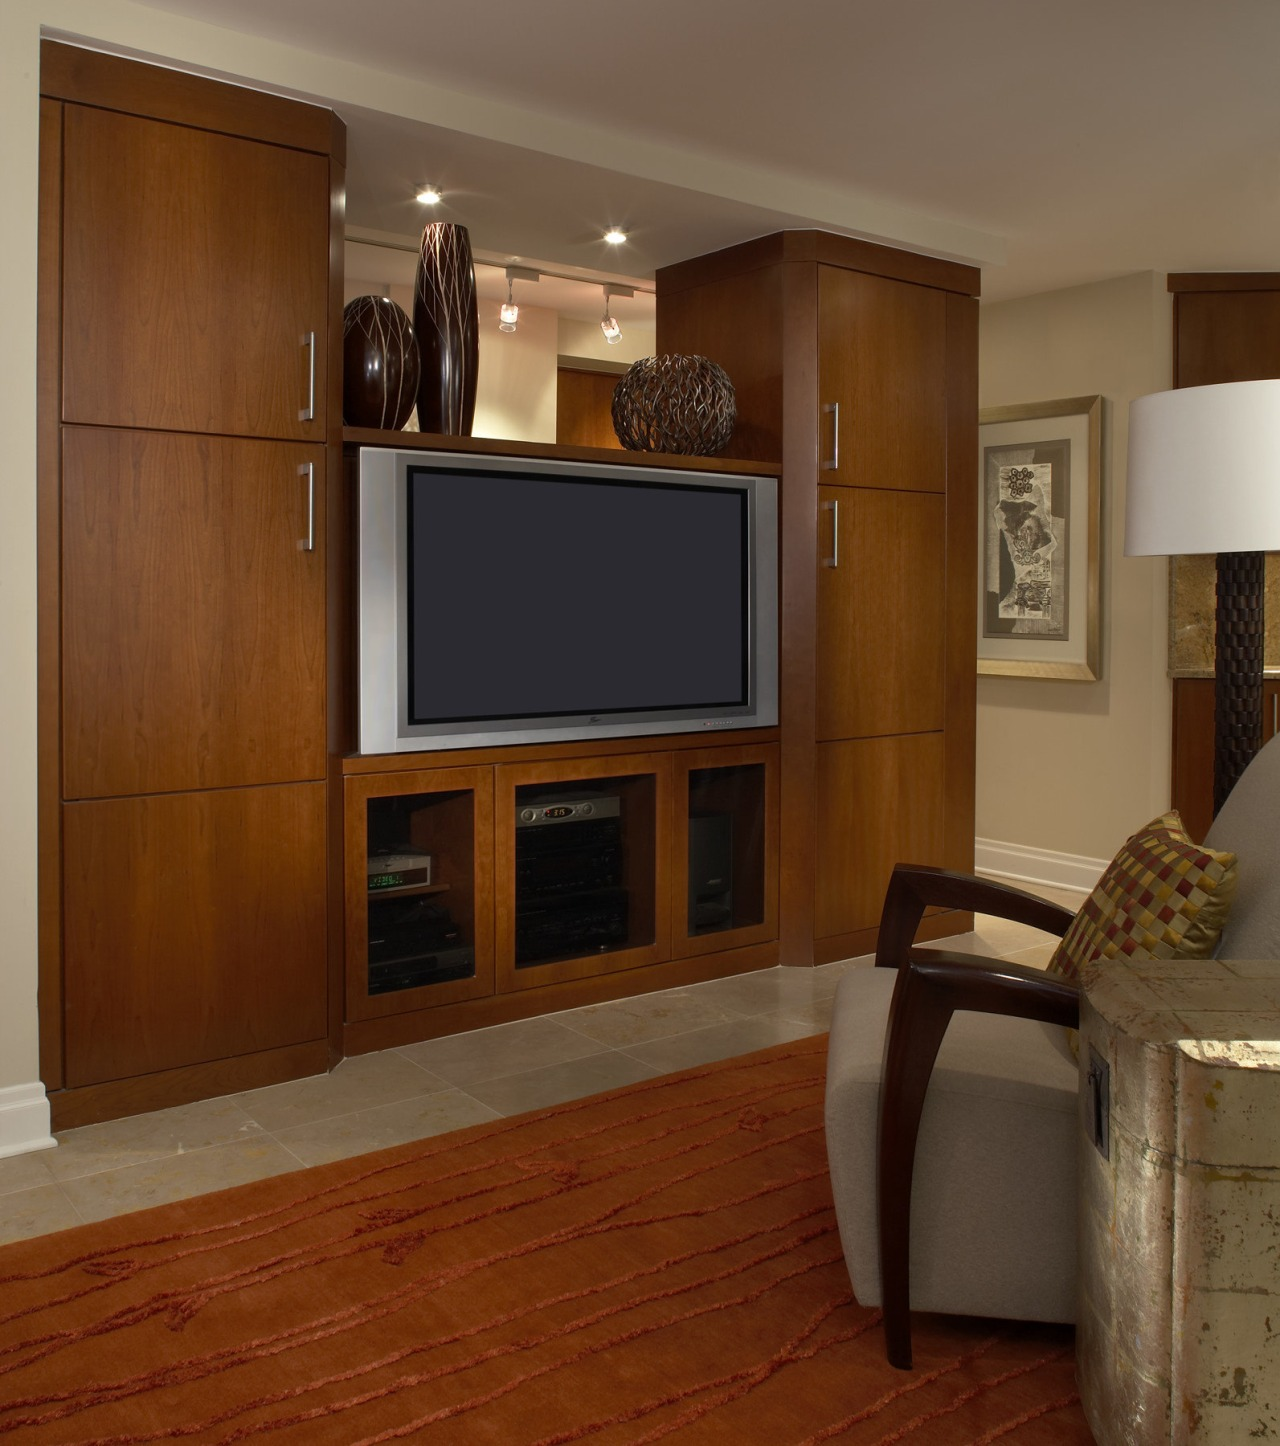 This contemporary entertainment centre was designed and made cabinetry, floor, flooring, furniture, hardwood, home, interior design, laminate flooring, living room, room, shelving, wall, wood, wood flooring, wood stain, brown